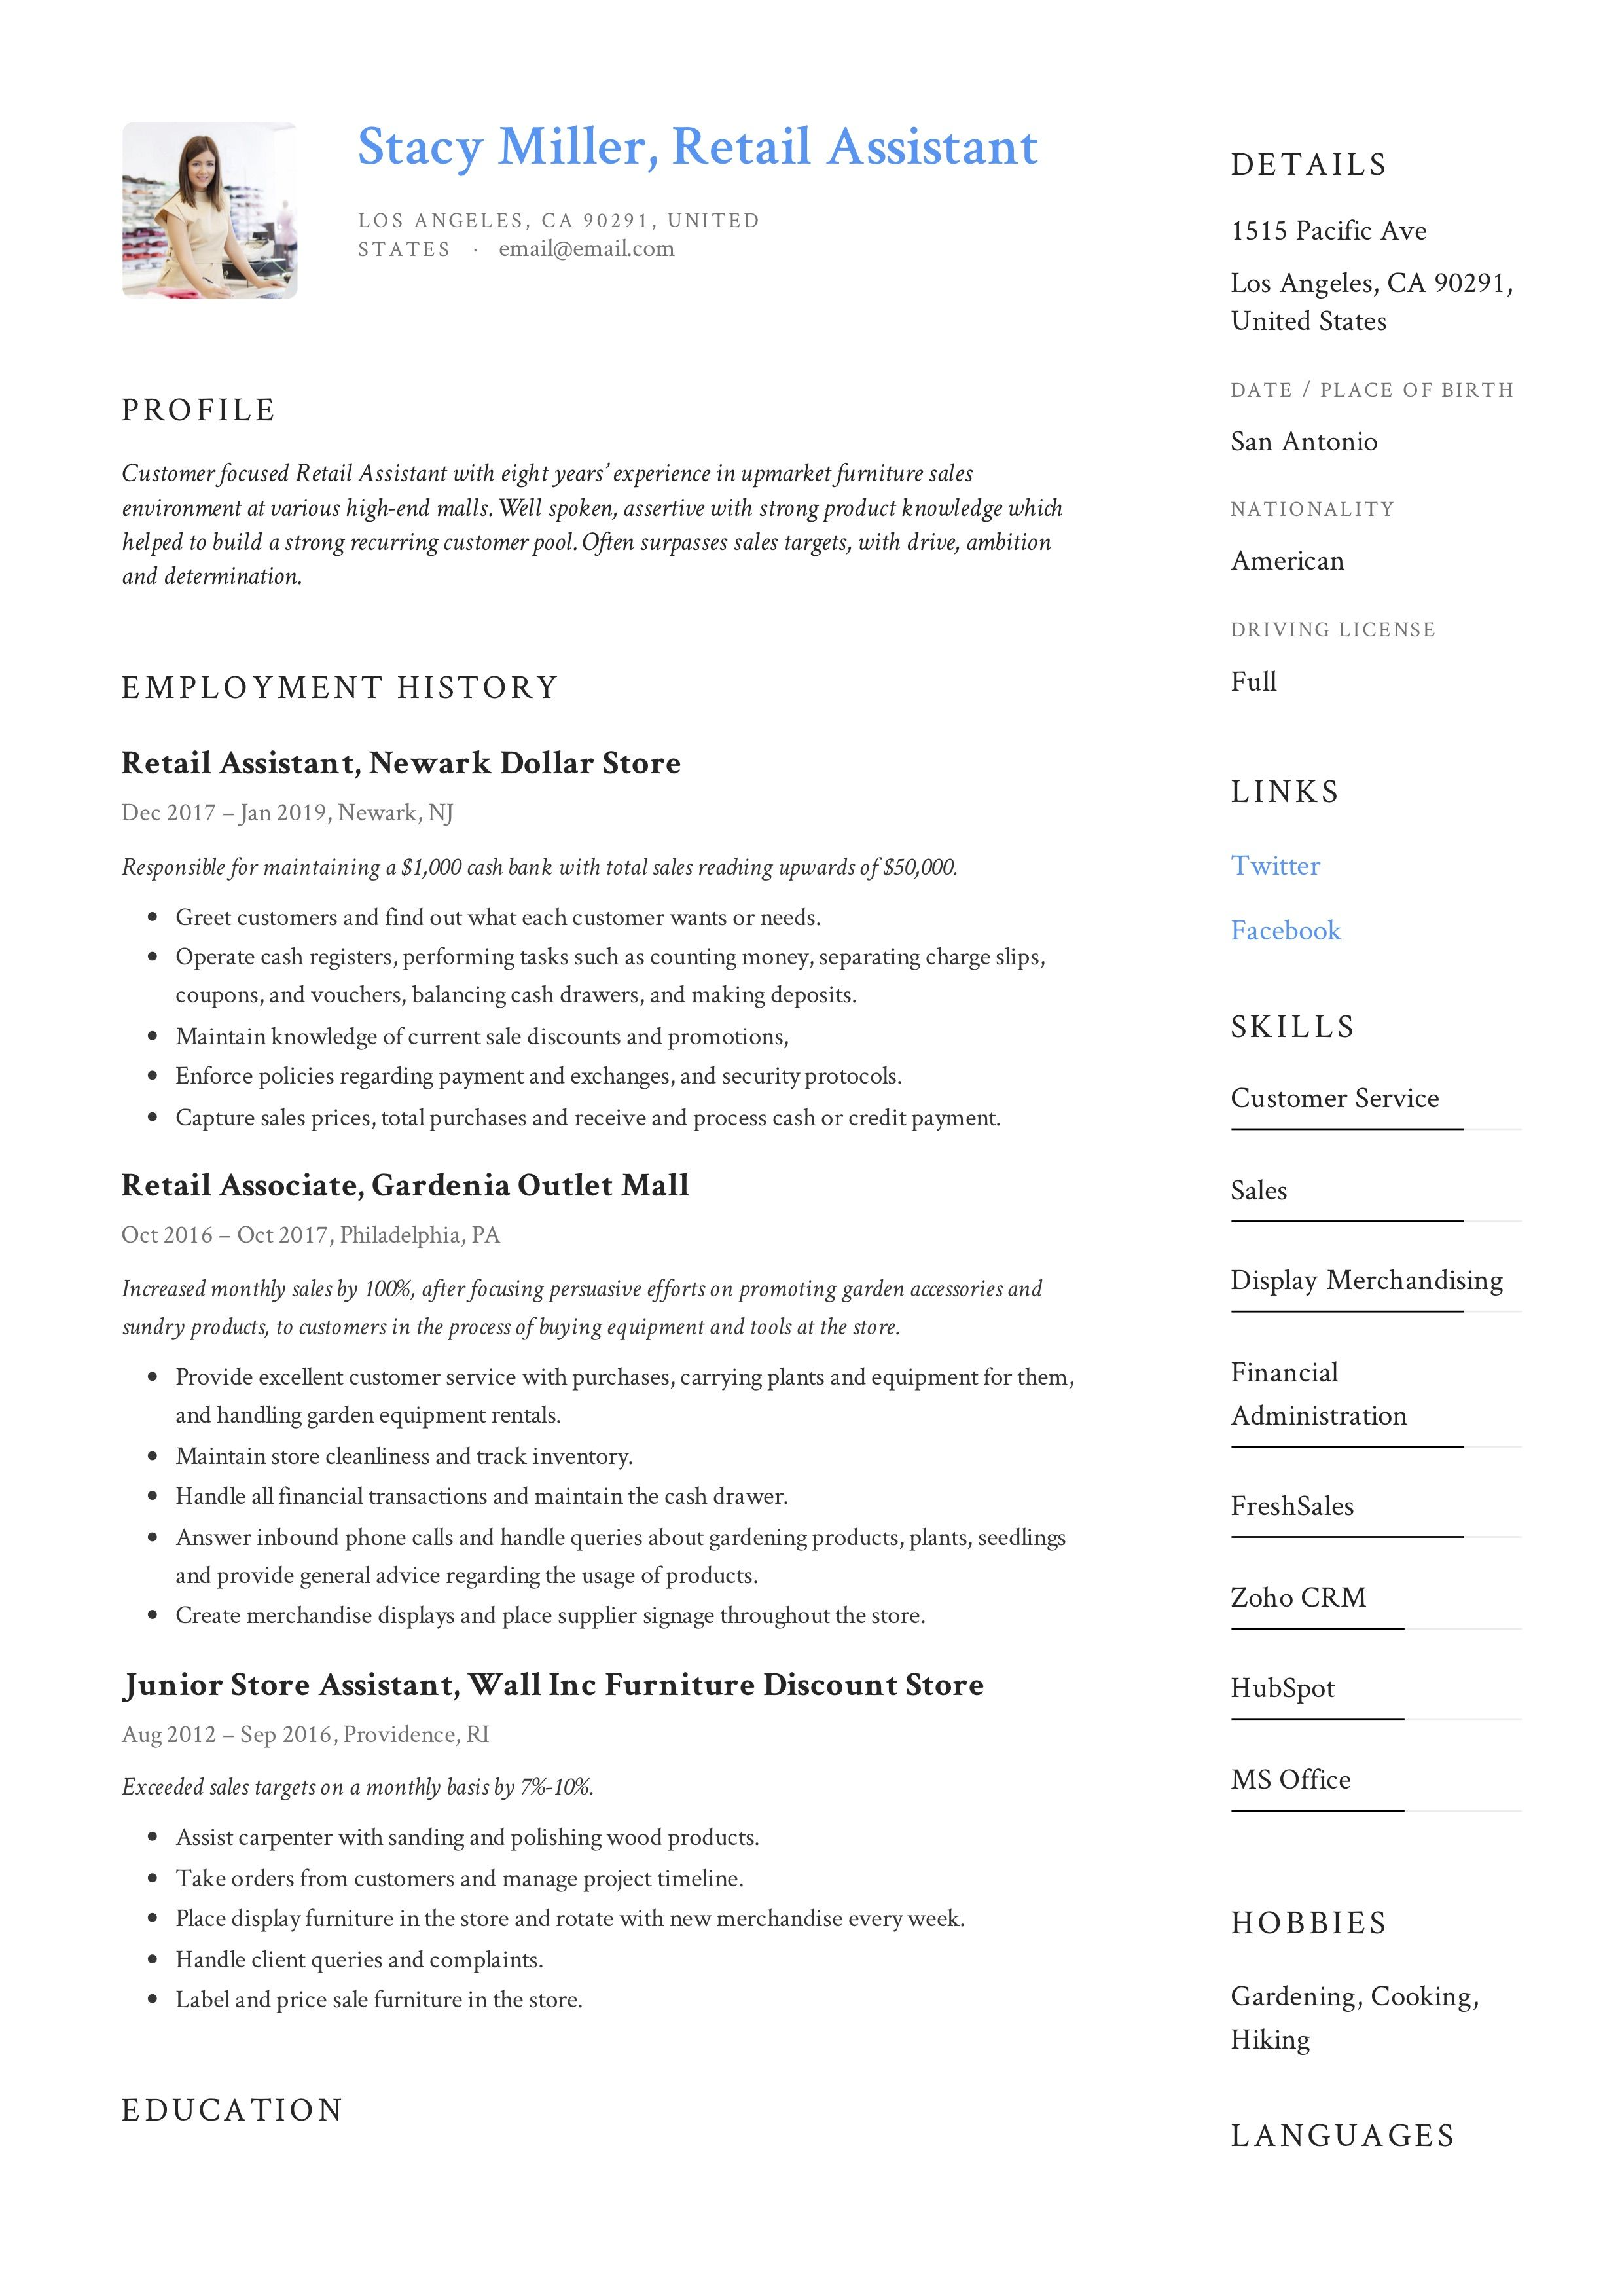 Modern Retail Assistant Resume, template, design, tips